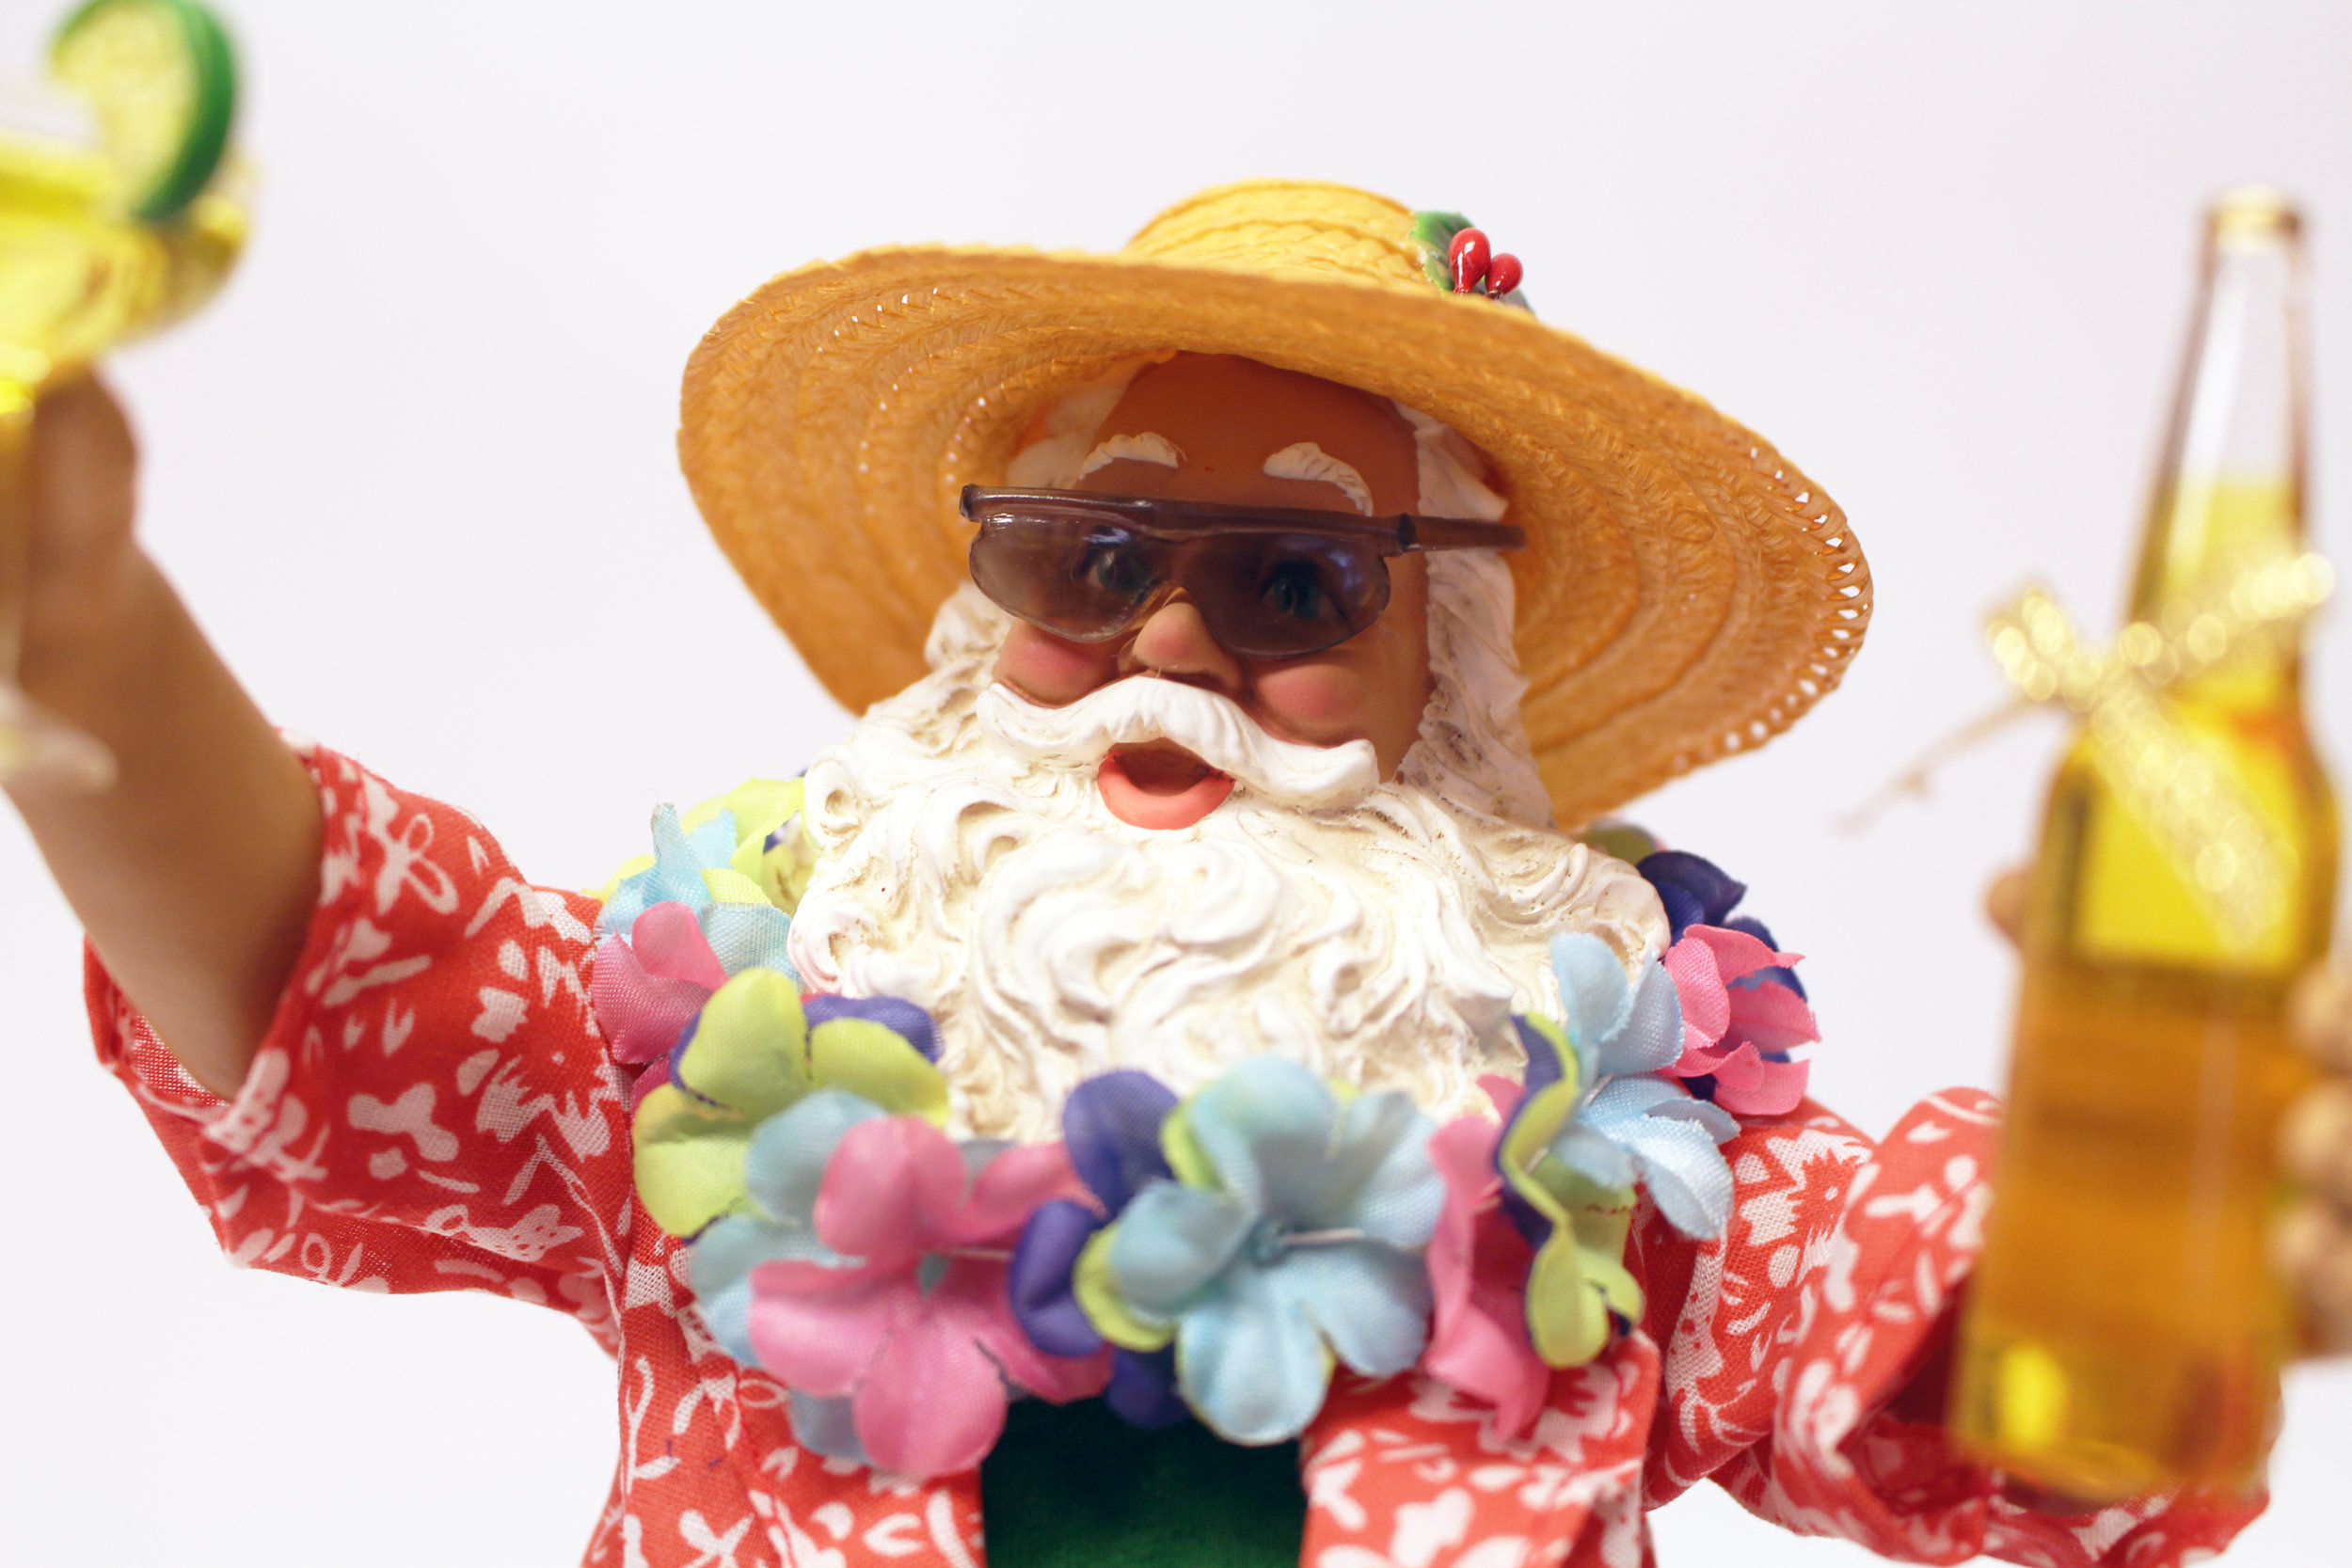 This Beach Santa is one of our sale items…